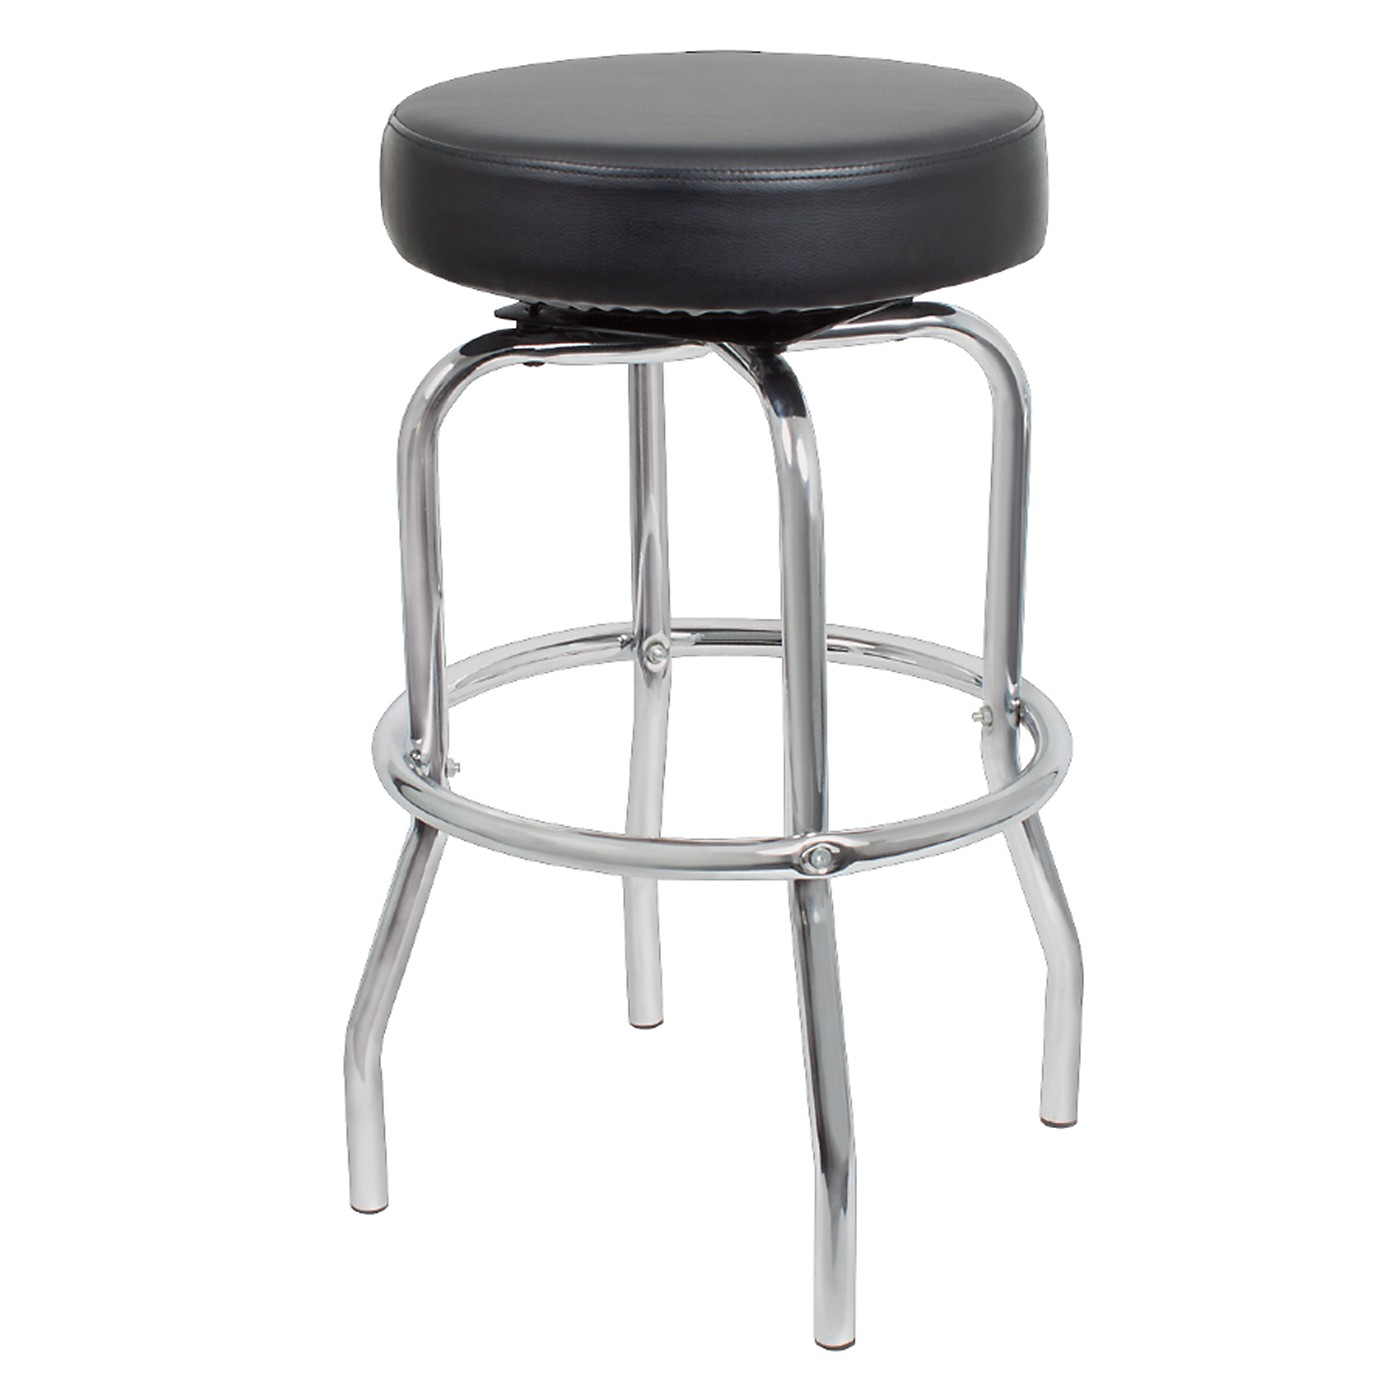 Proline 24 in. Faux Leather Guitar Stool thumbnail